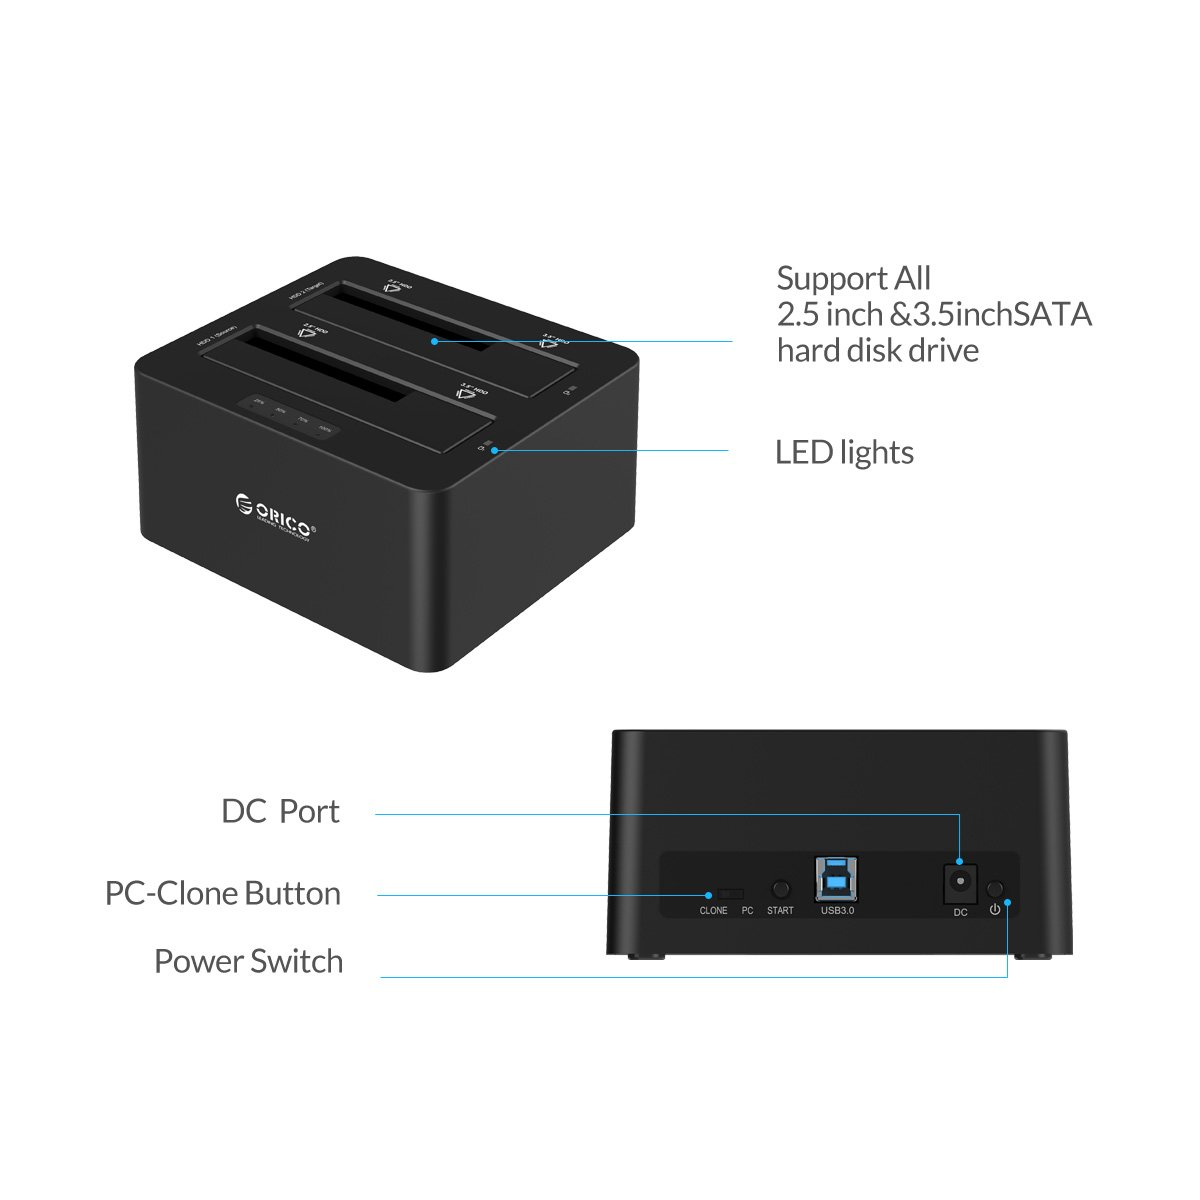 Orico Super Speed Usb 30 Dual Bay 25 And 35 Sata Hdd Dock Buy 6518us3 Portable Docking Usb30 Online At Low Price In India